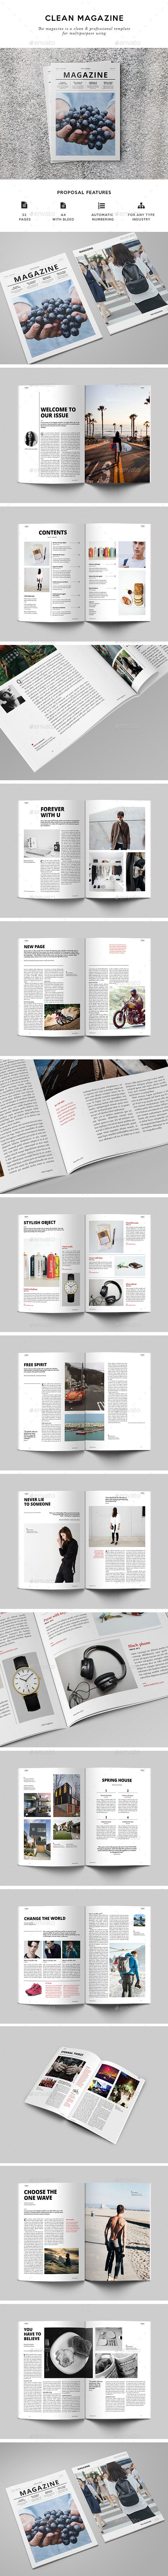 Multipurpose Magazine Template #indesign | Graphic Design ...